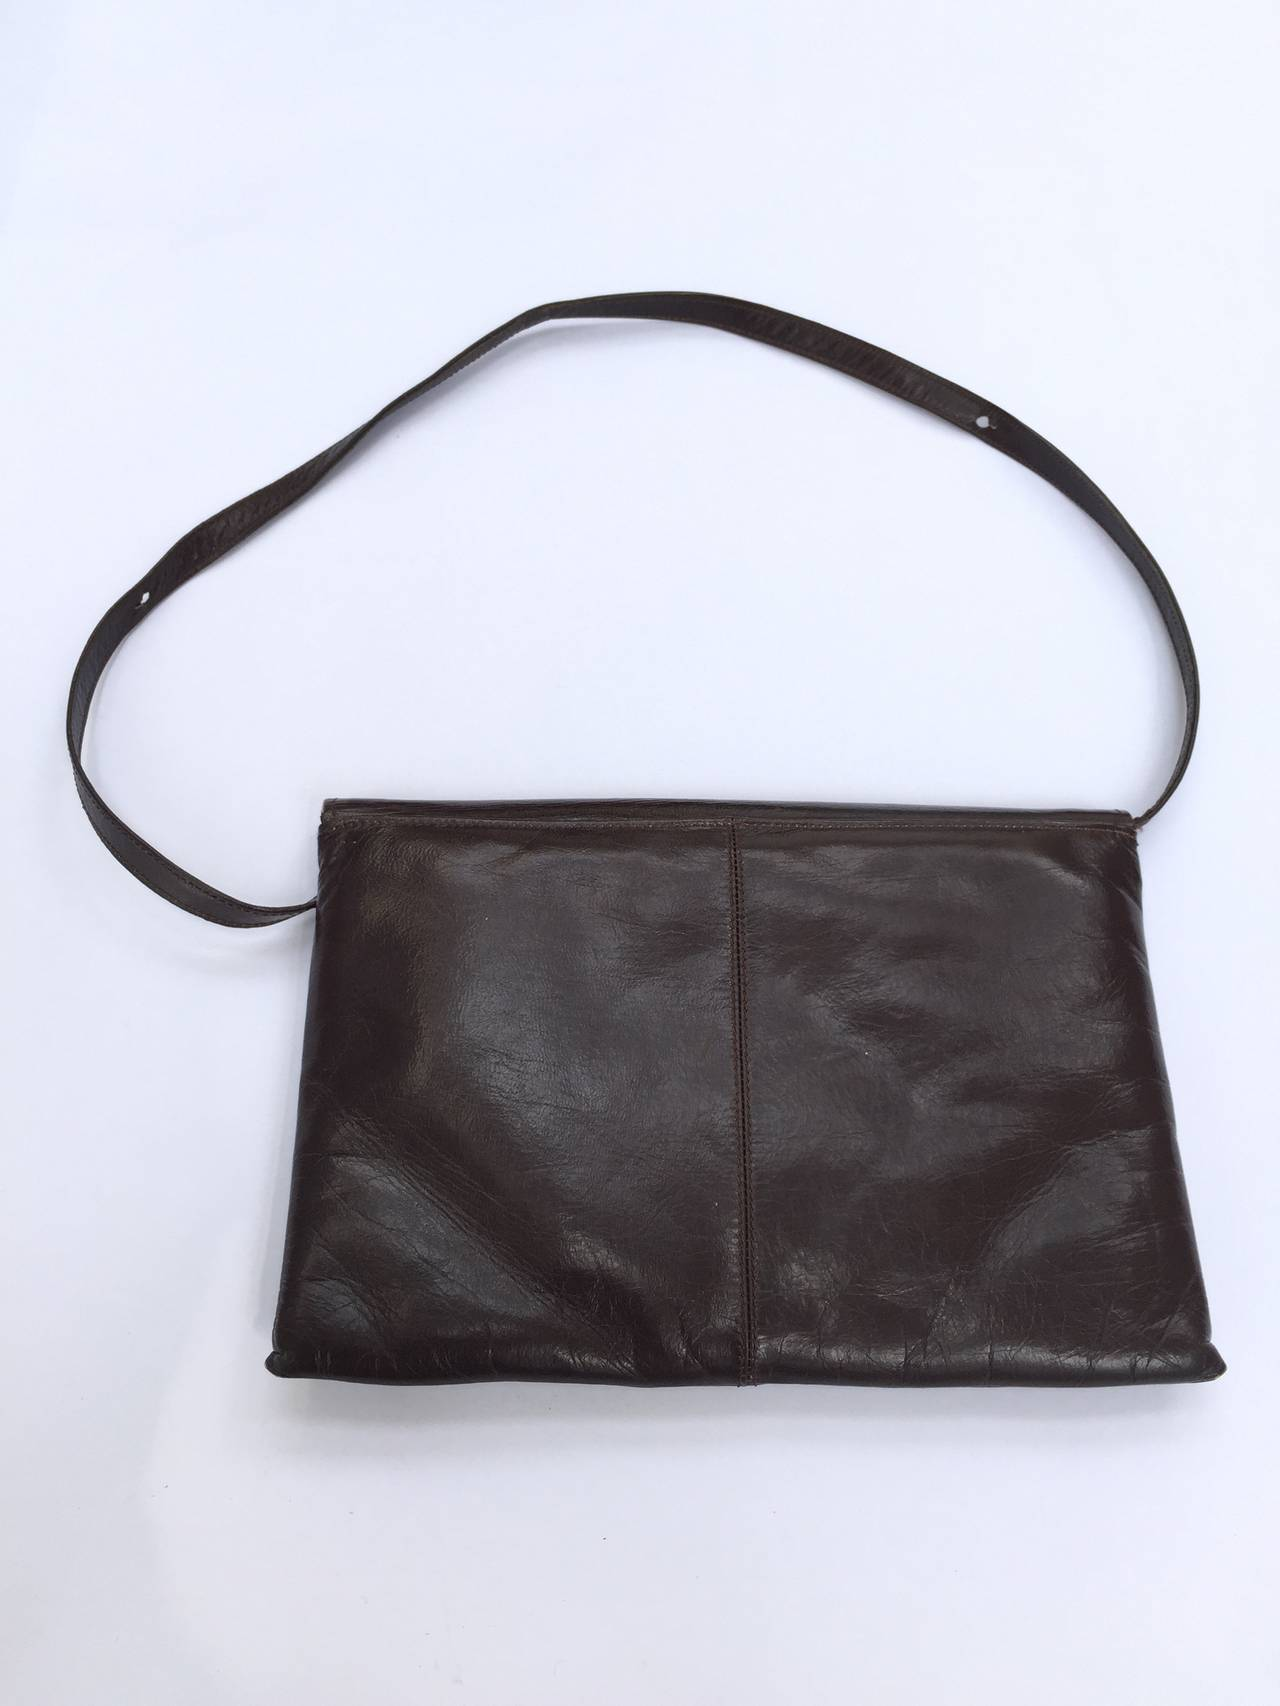 Charles Jourdan 1970s brown leather with stitched logo shoulder / clutch handbag. Straps are removal for when the clutch is needed.